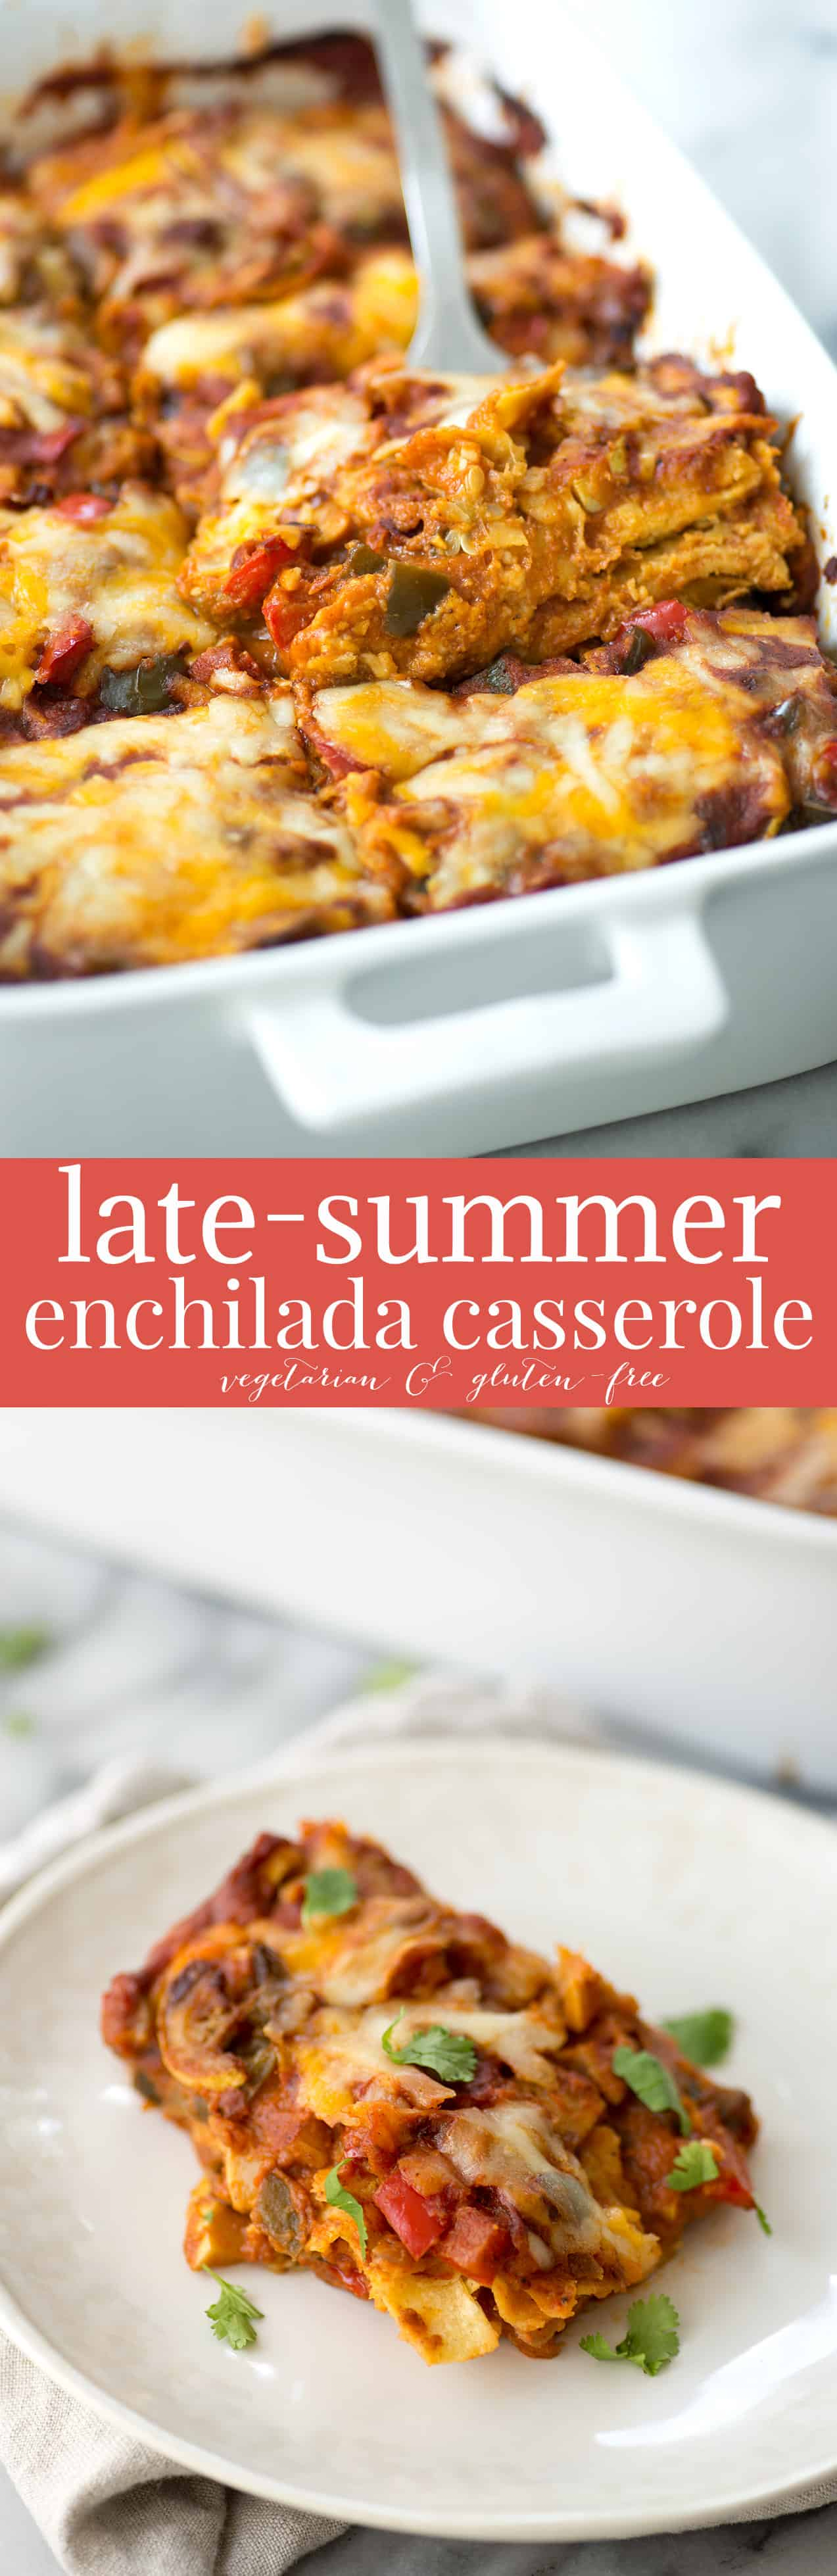 Late-Summer Vegetarian Enchilada Casserole. Layers of corn tortillas, homemade enchilada sauce, peppers, squash and cheese. Vegetarian & Gluten-Free | www.delishknowledge.com